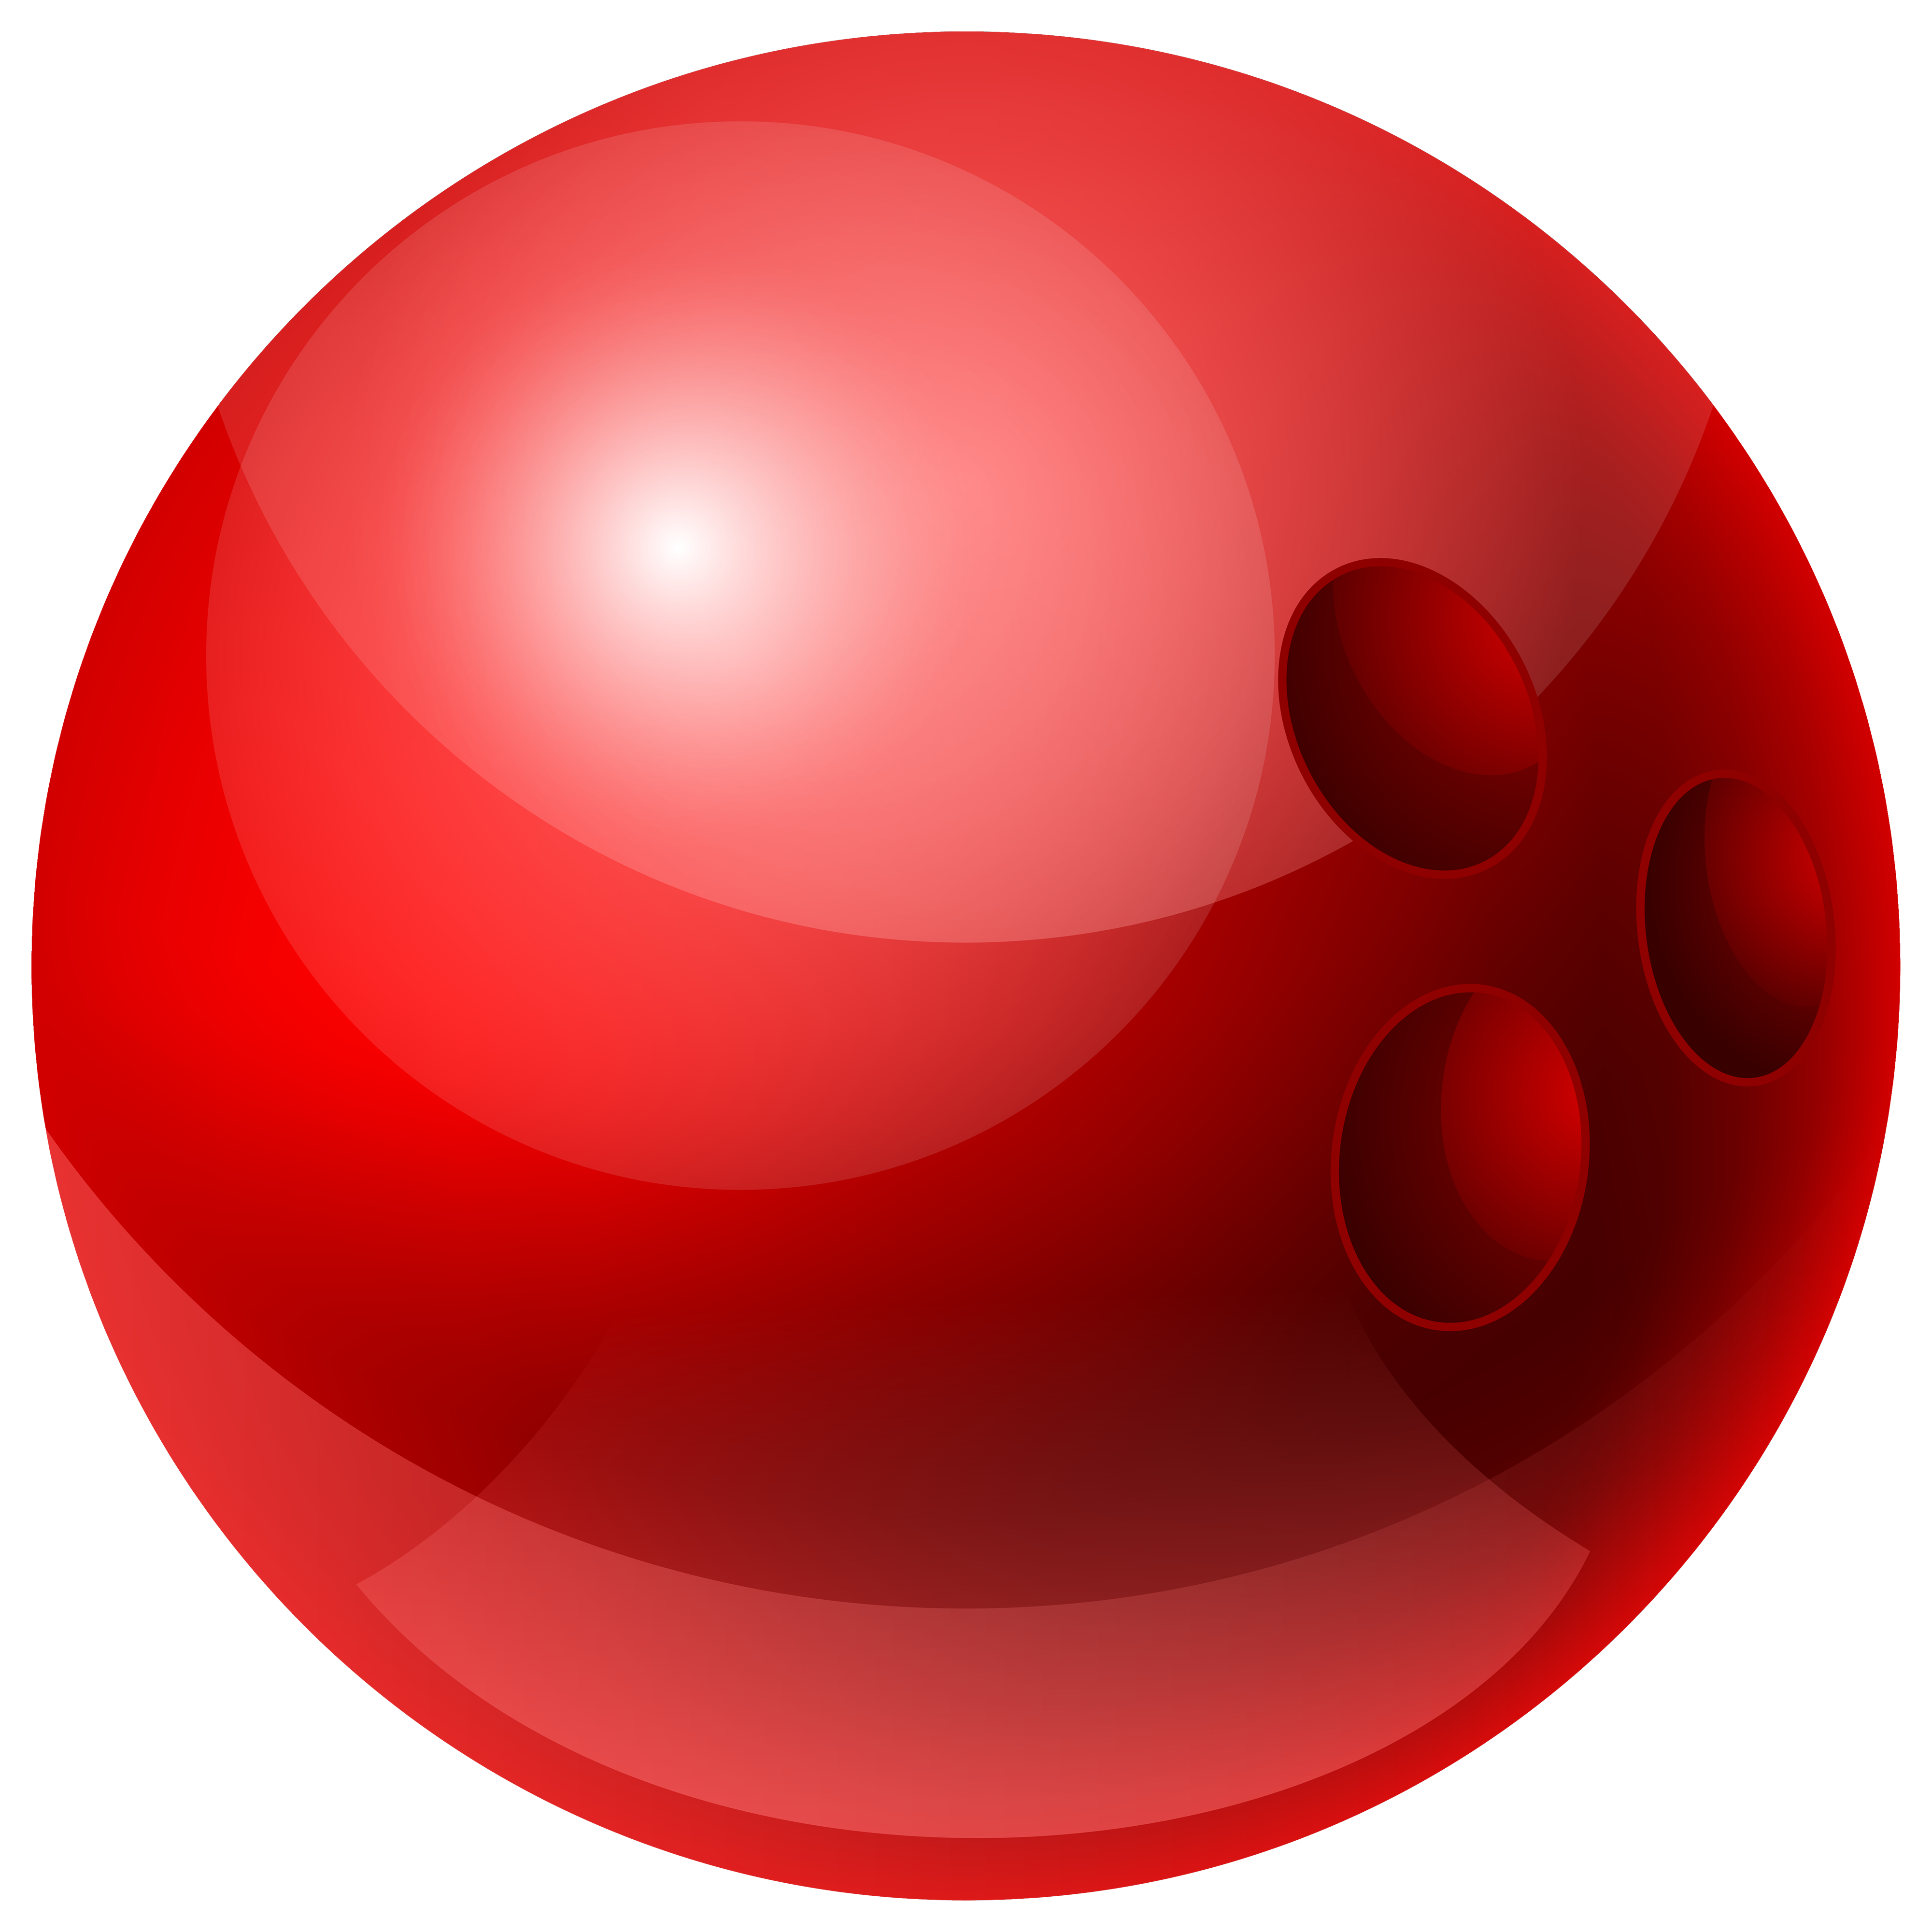 4000x4000 Red Bowling Ball Png Clipart